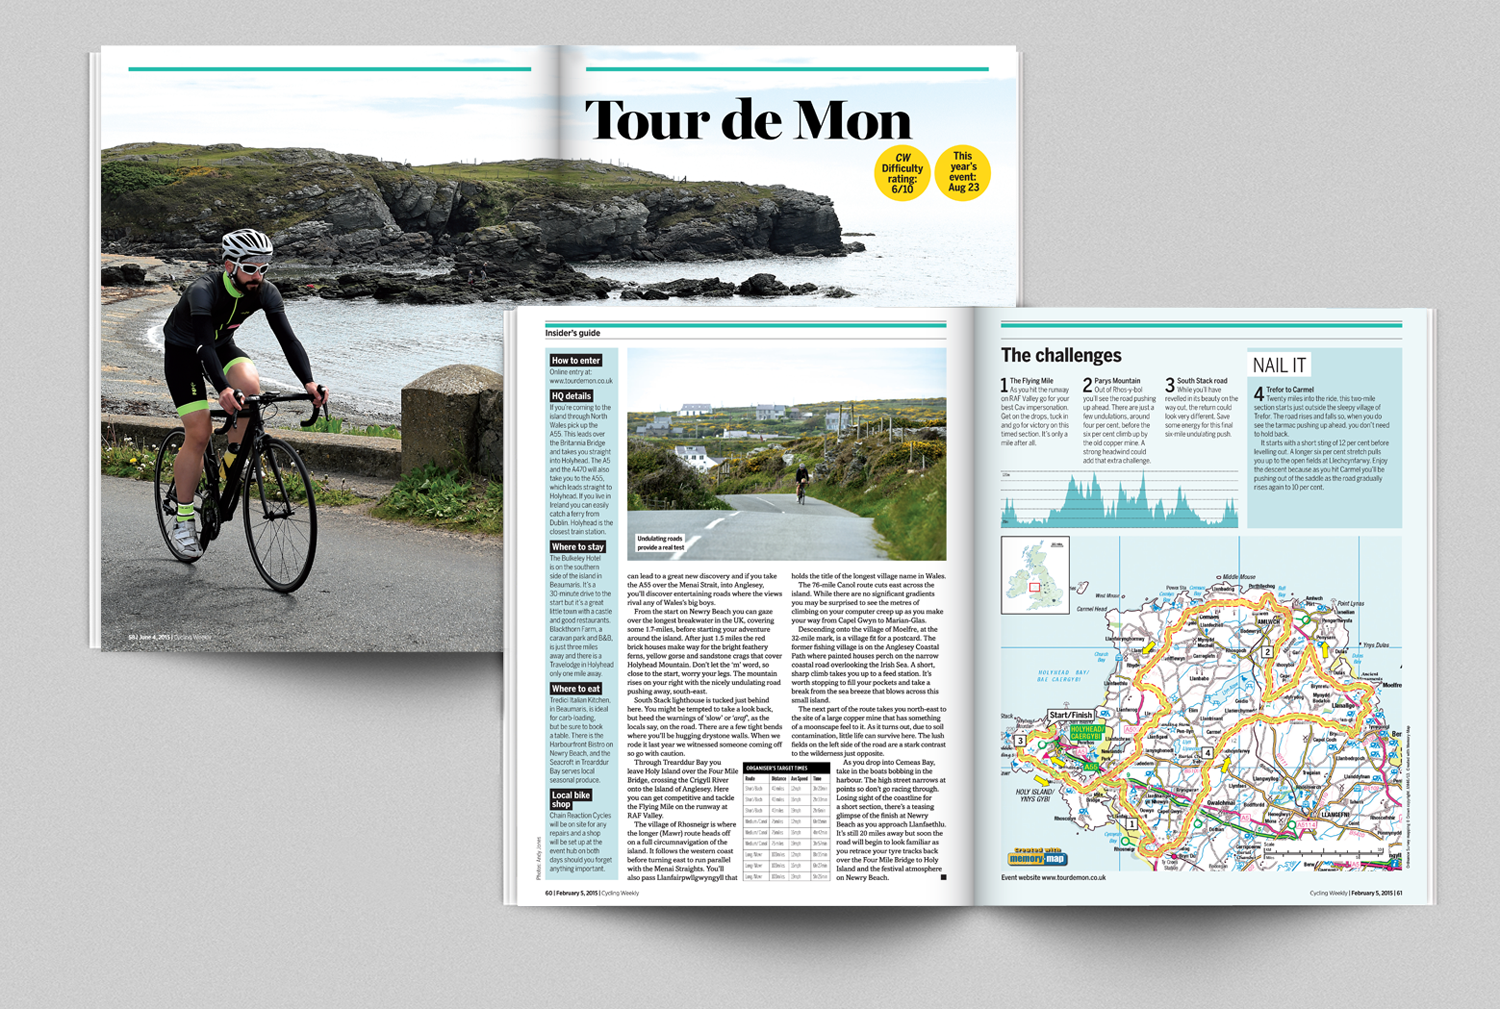 Features showing data are common in the cycling magazines. The graph and table I created in Indesign and the map I plotted in Illustrator on a downloaded map from memory map